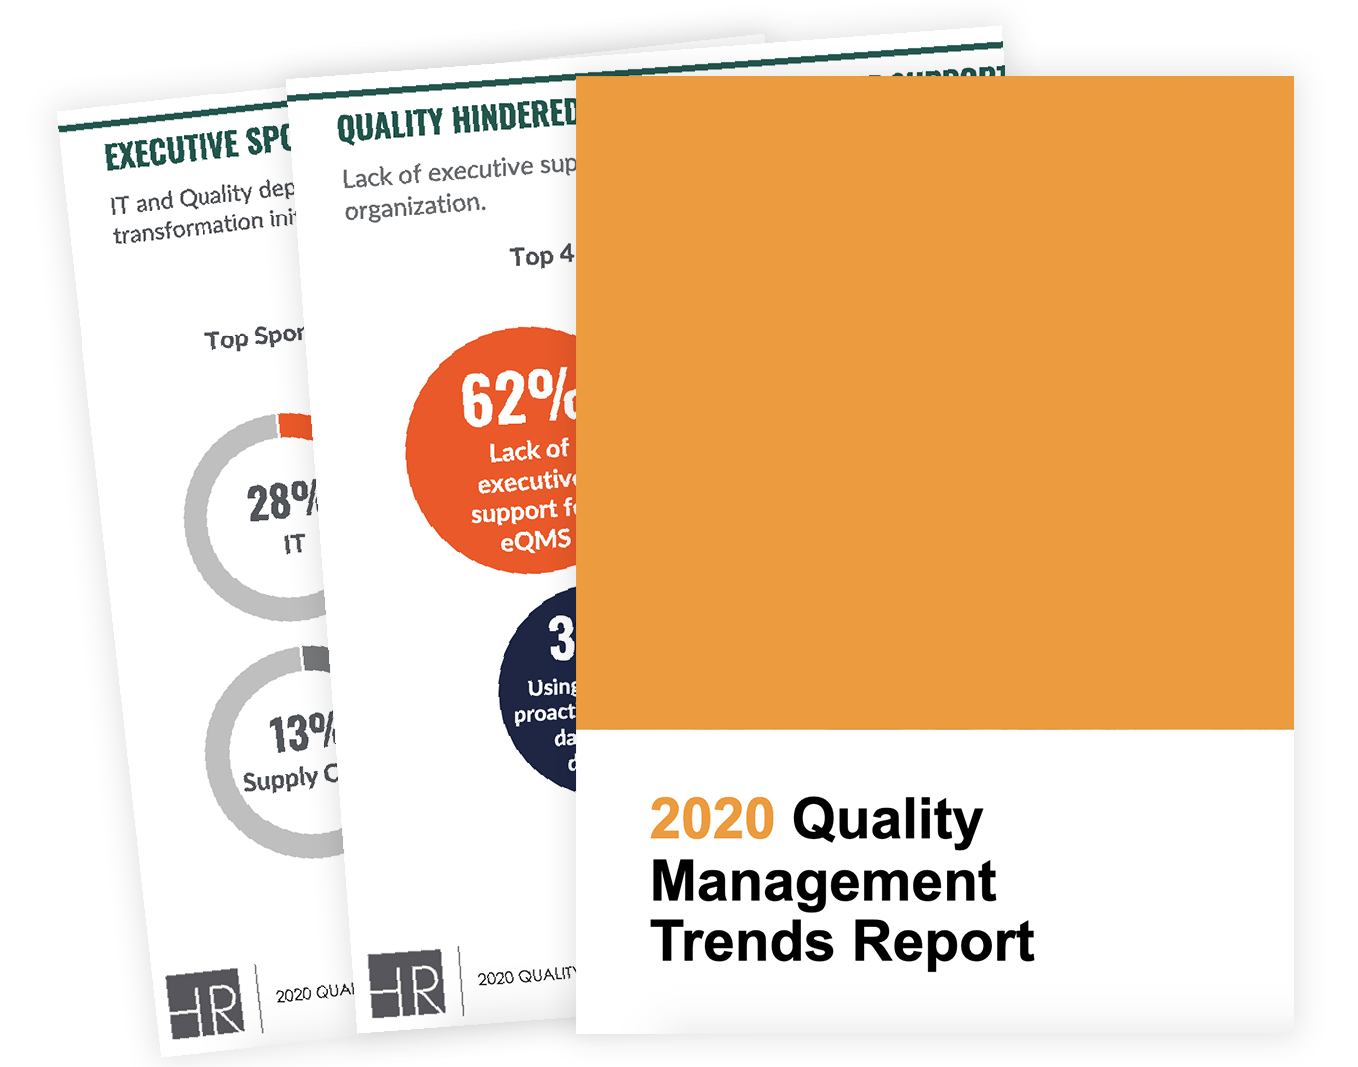 2020 Trends in QM